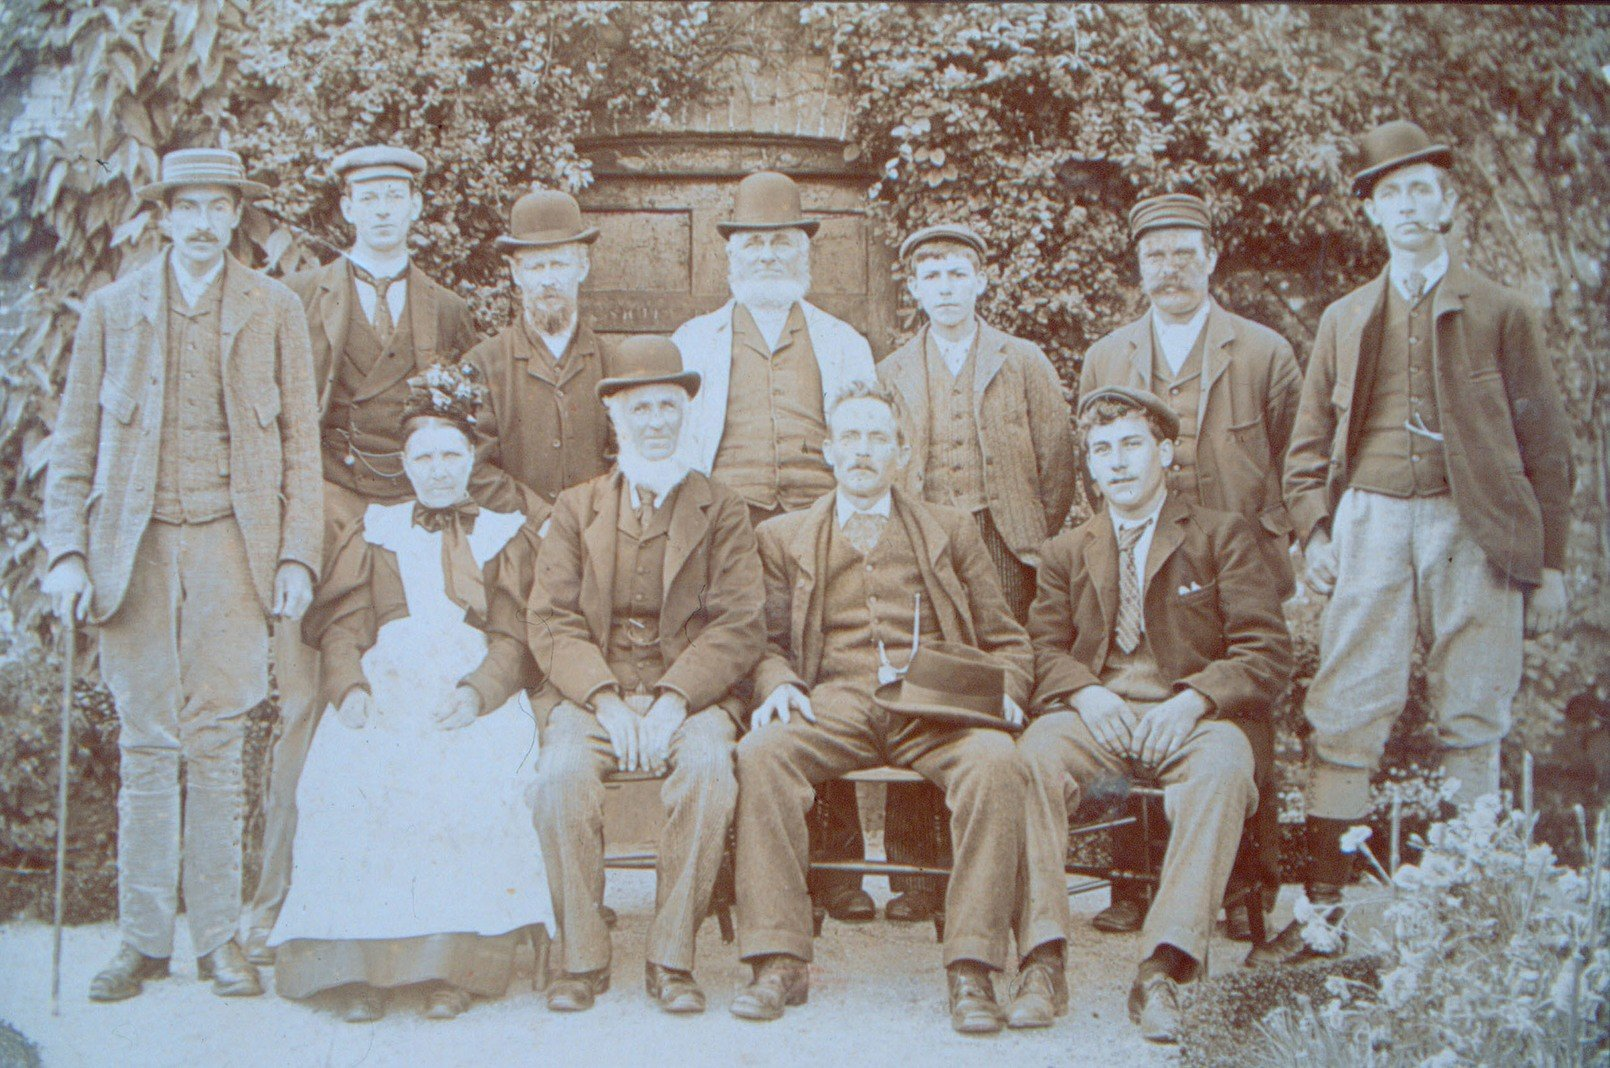 From the Flowerbeds to the Battlefields - Heligan's Gardeners in The Great War 1914-1918